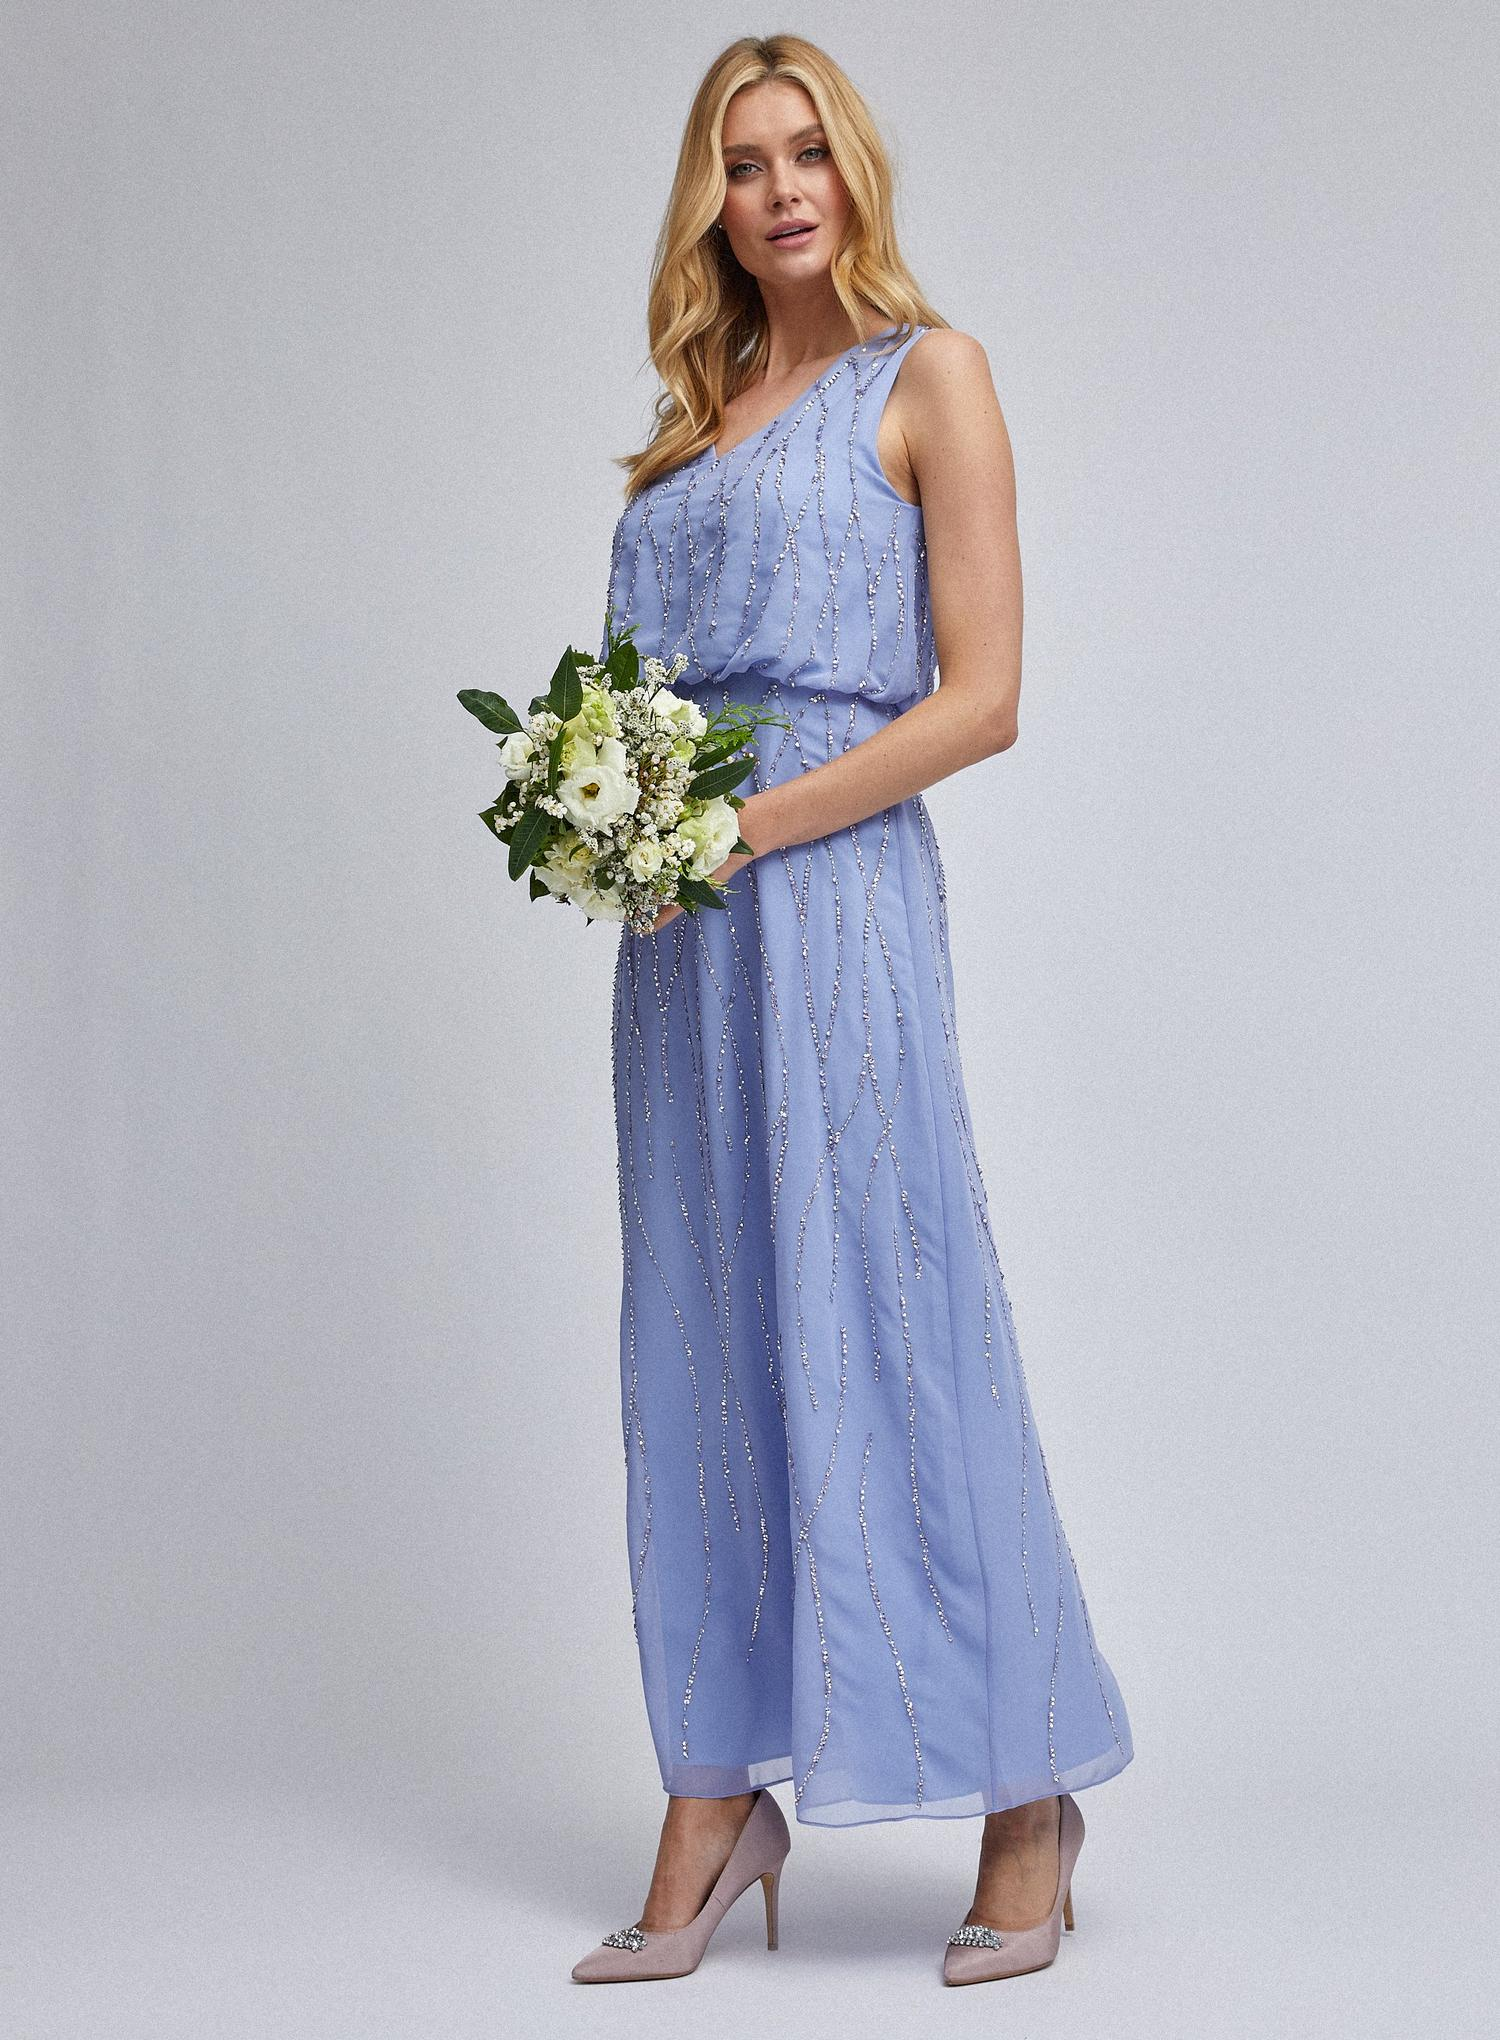 106 Cornflower Morgan Maxi Dress image number 1